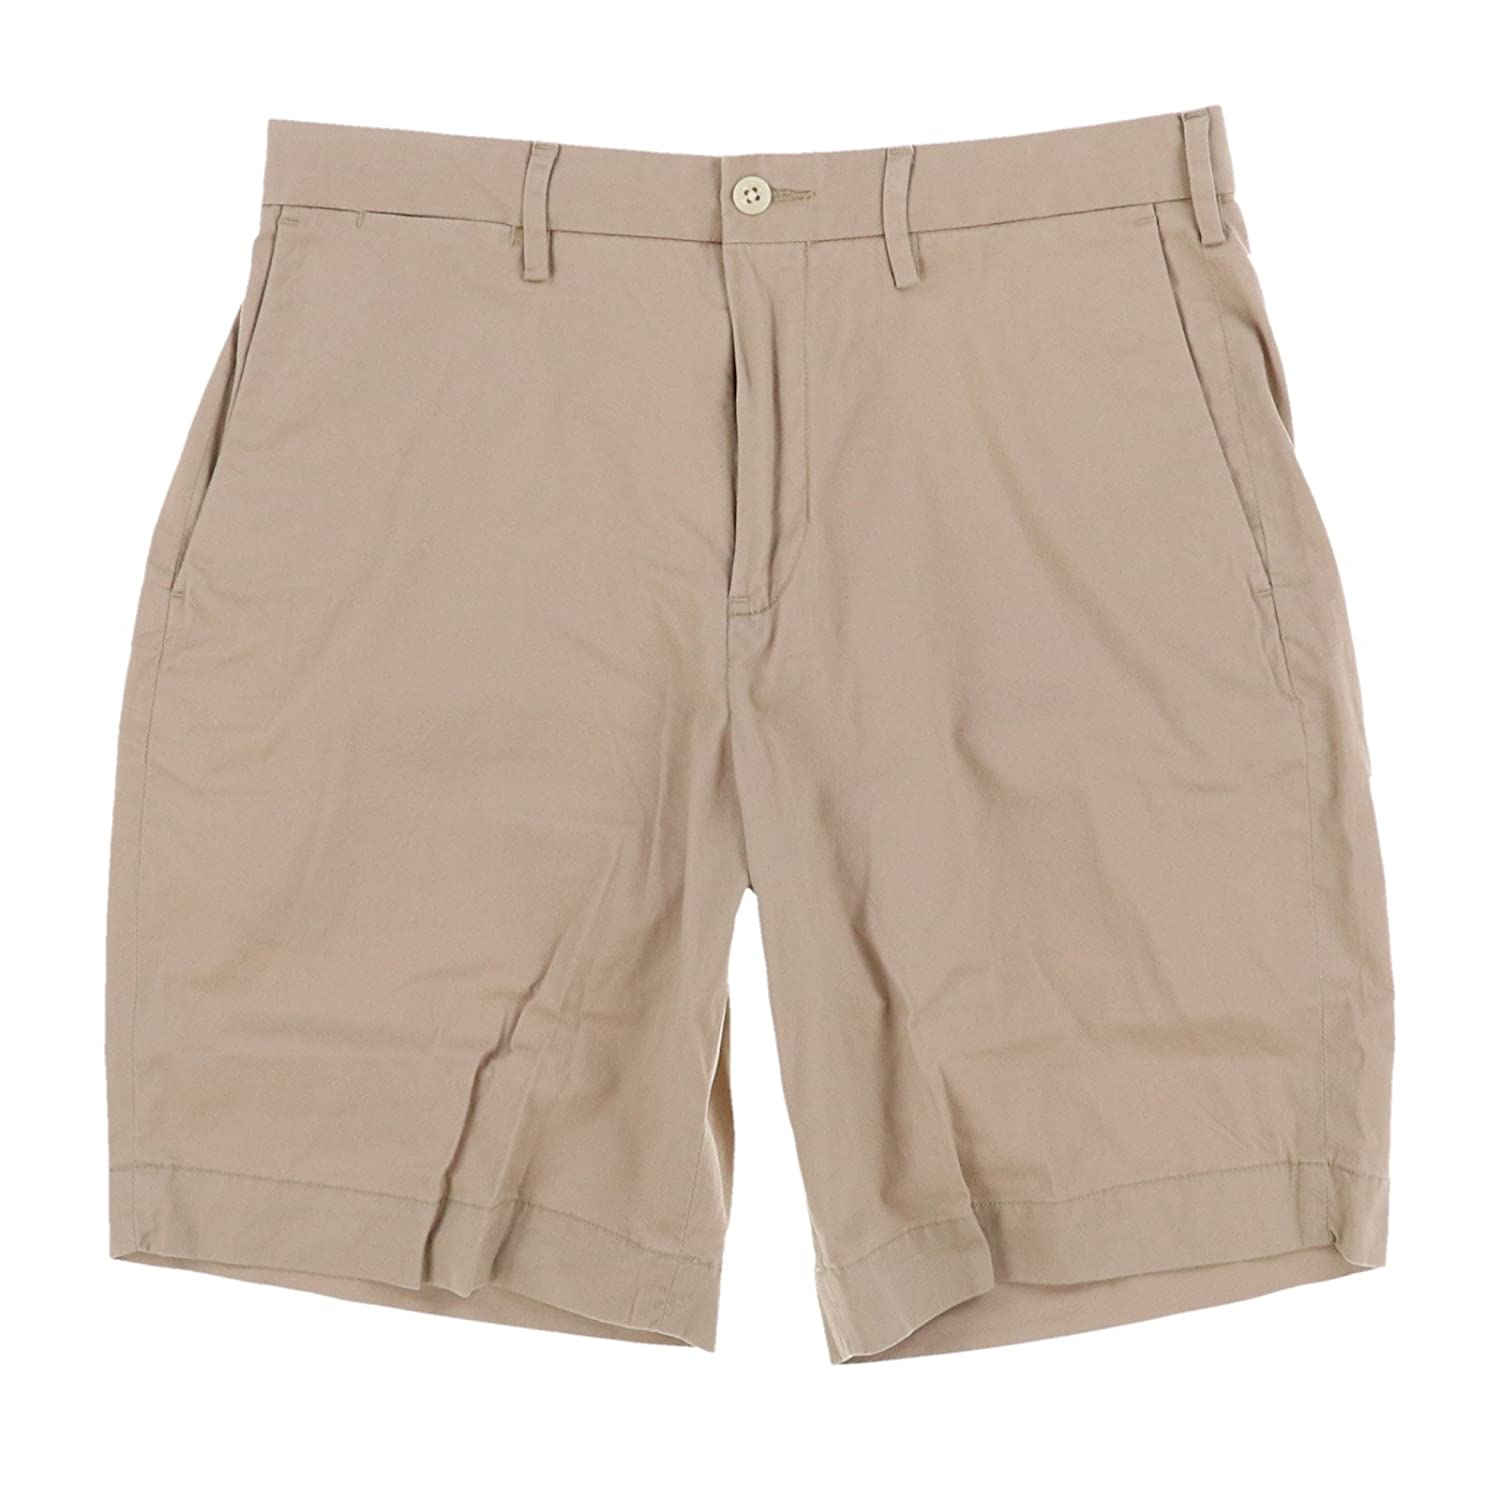 8958877a0 Top10  Polo Ralph Lauren Mens Stretch Classic Fit Chino Shorts